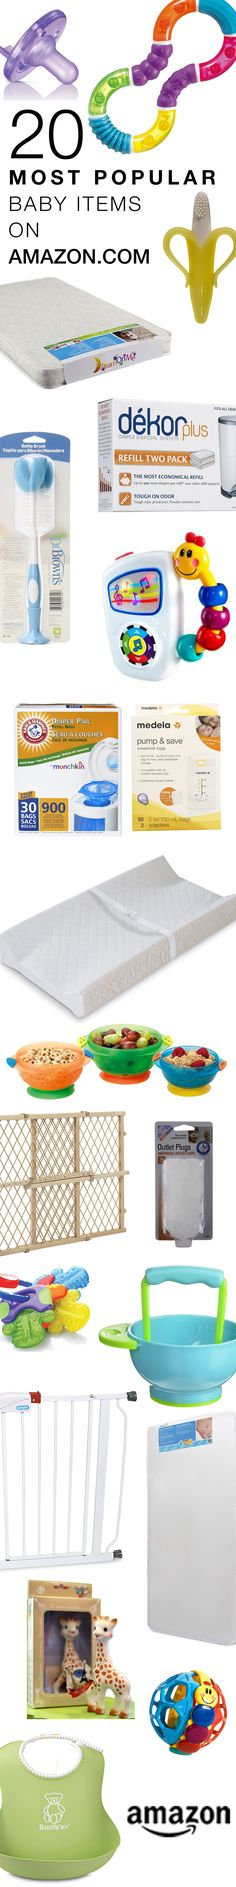 20 Most Popular Baby Items on Amazon.com    Plenty of baby shower gift ideas, gender neutral nursery items, new and educational baby toys, and more ideas for moms. And make it easy for friends and family to shop for you by registering with Amazon. https://www.amazon.com/baby-reg/homepage?ref=tsm_1_pi_s_amzn_babreg1